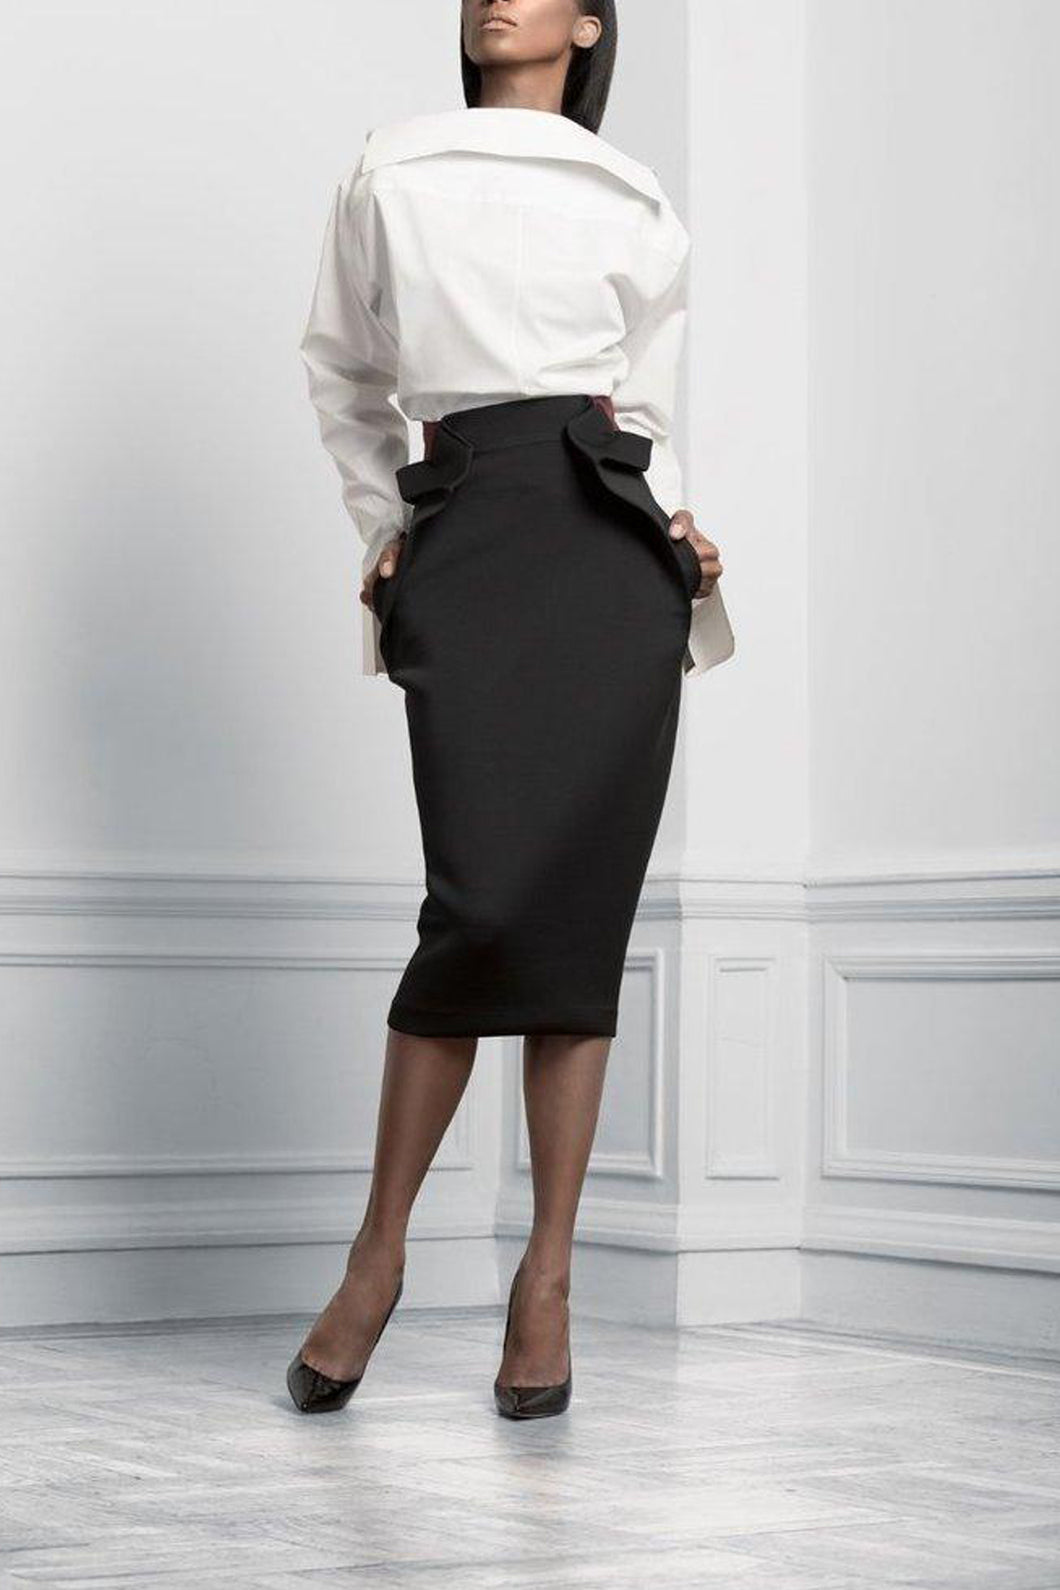 Statement structured skirt by Sukeina